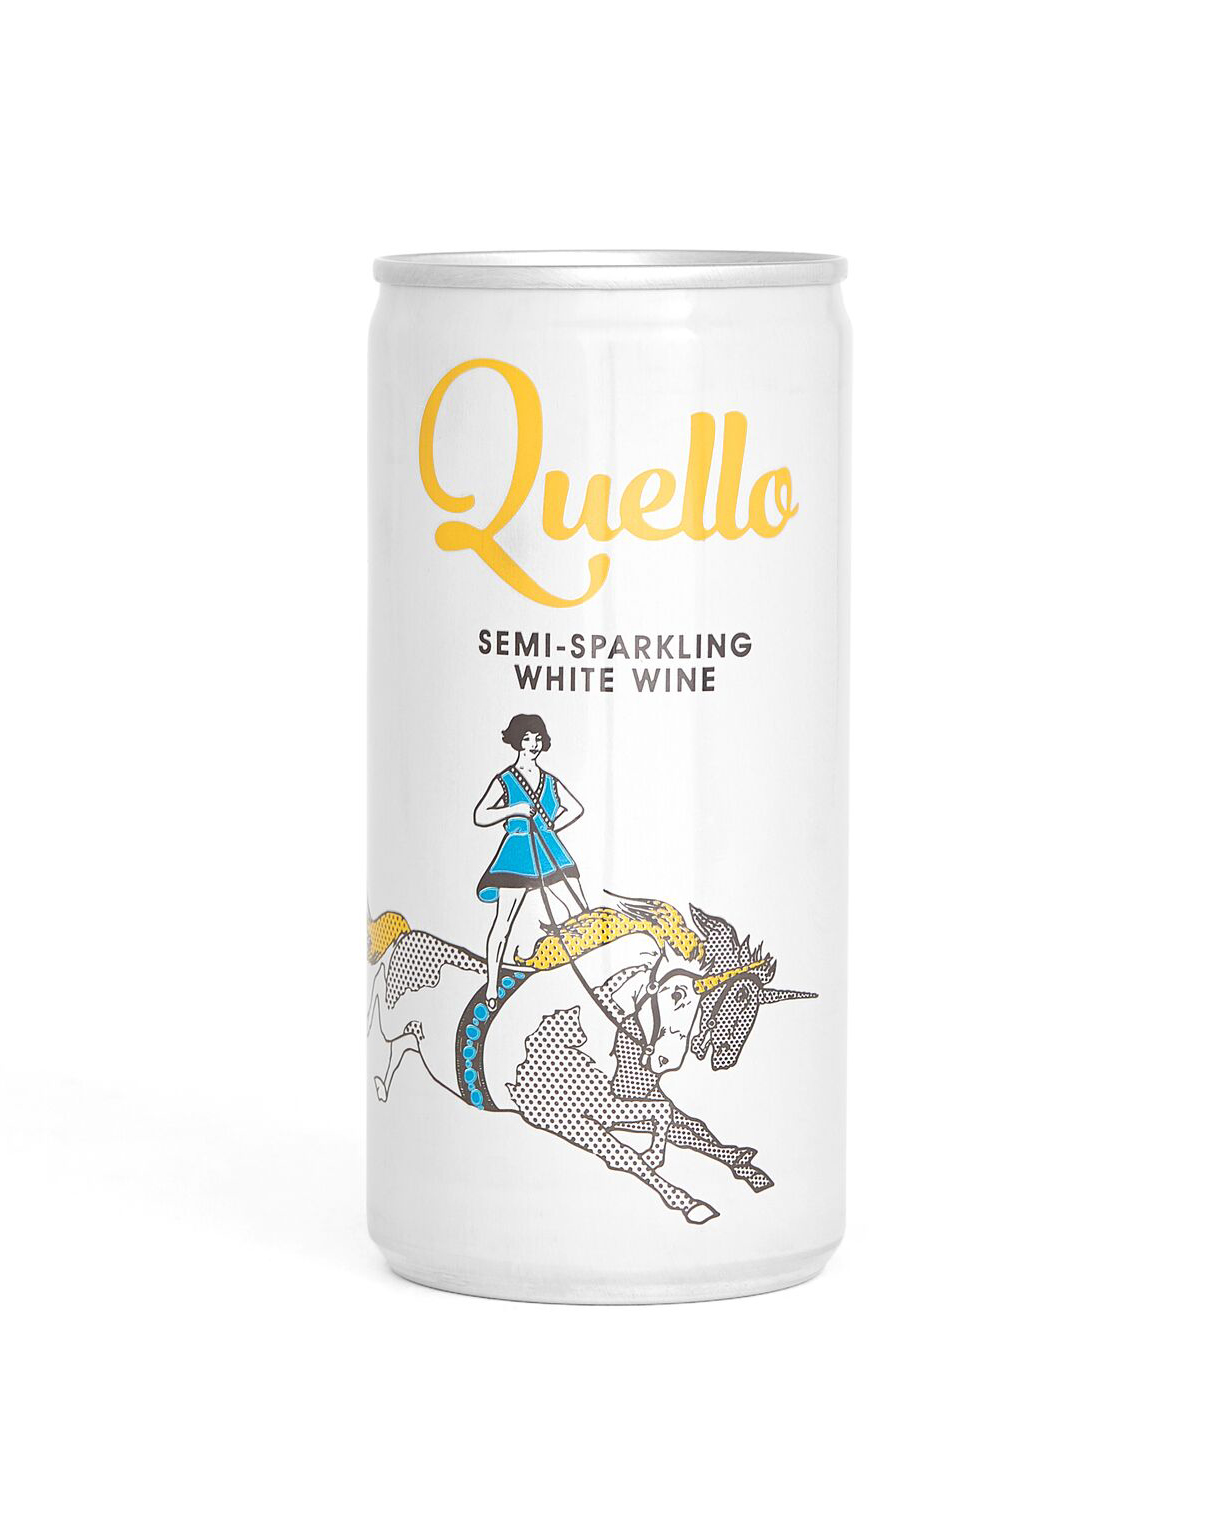 quello wine packshot photography SHED London